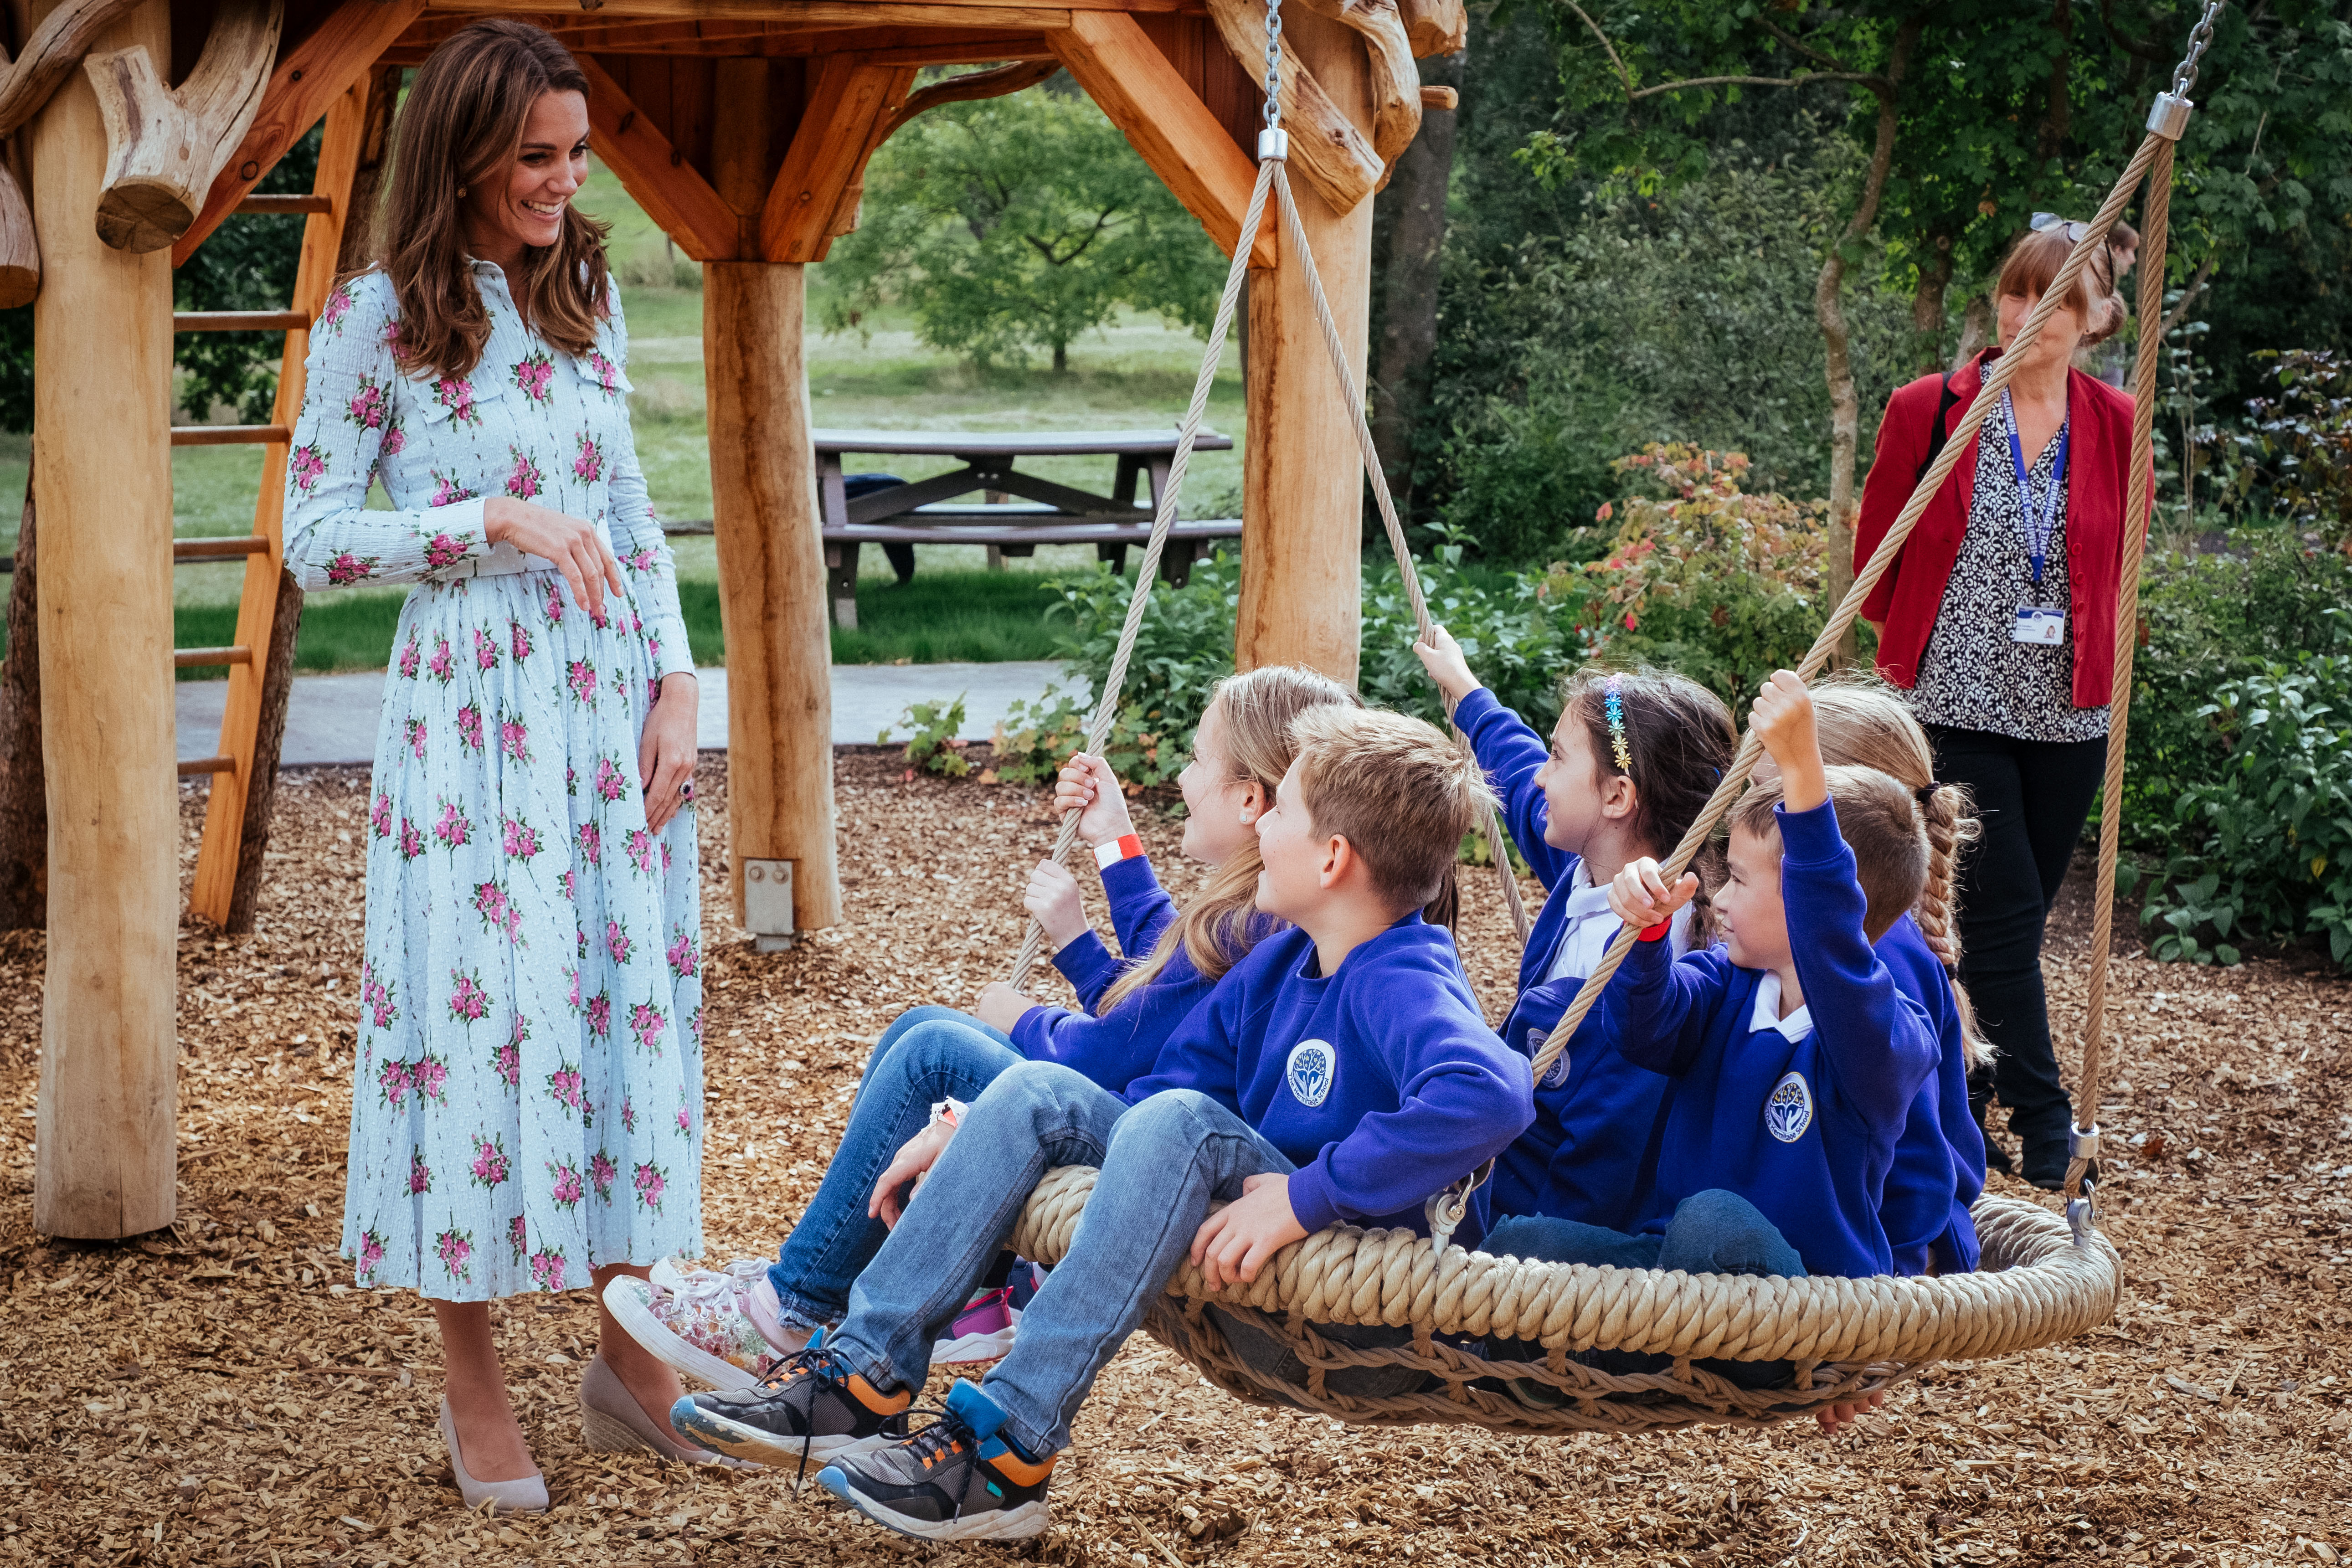 The Duchess of Cambridge at the RHS Wisley Back to Nature Garden.